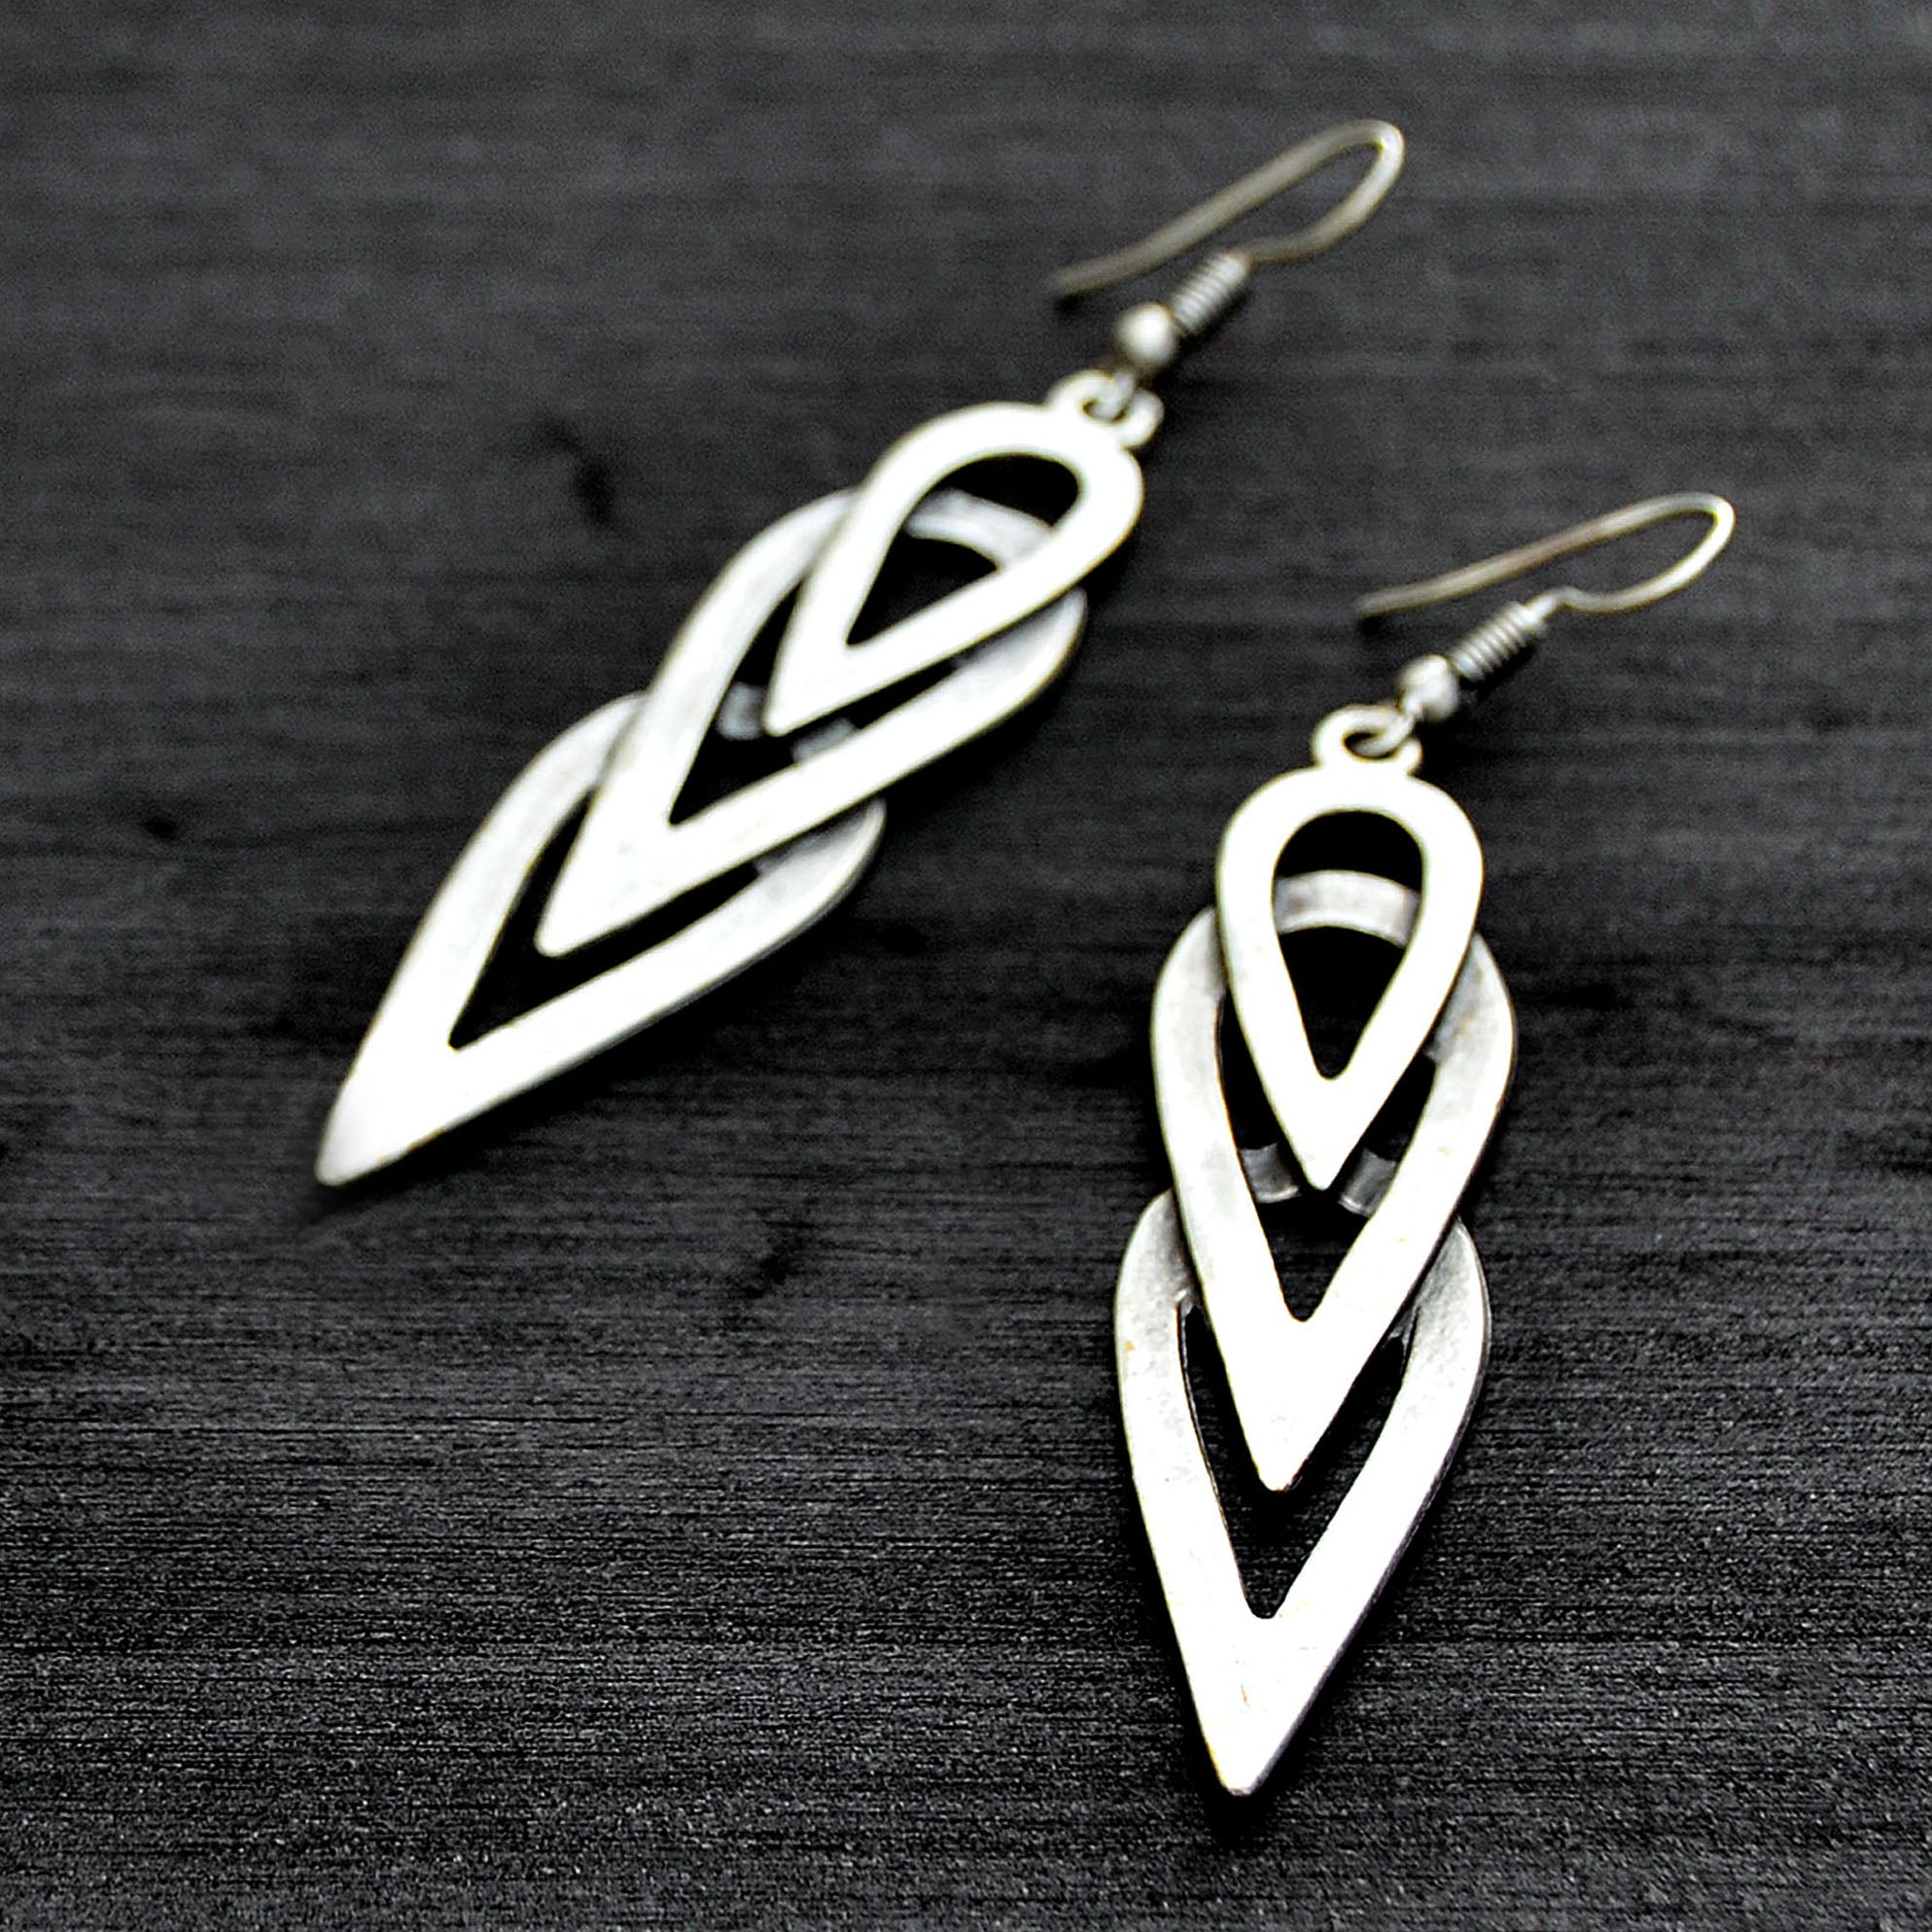 Sleek dangle earrings